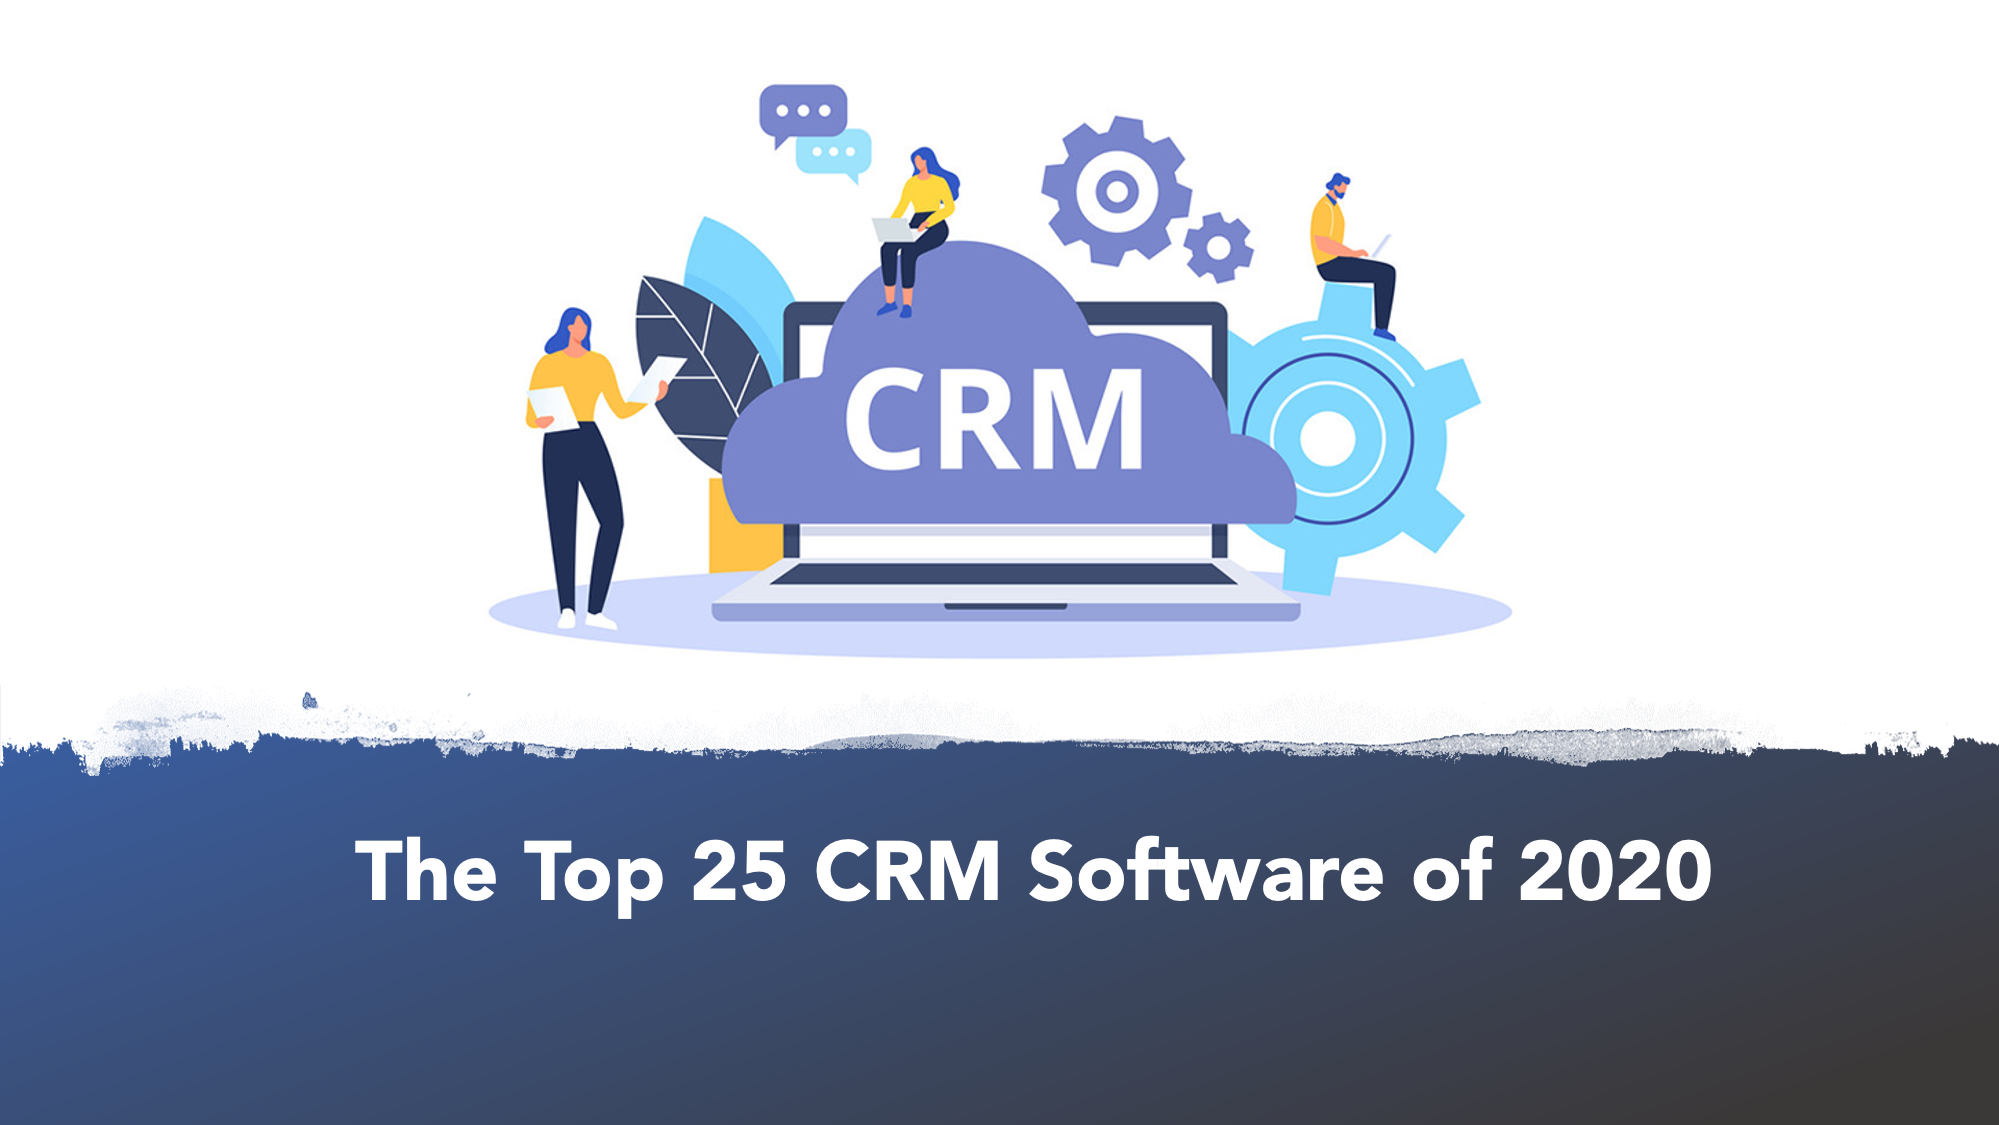 Best Crm For Small Business 2021 The Top 25 CRM Software of 2020 | The Software Report